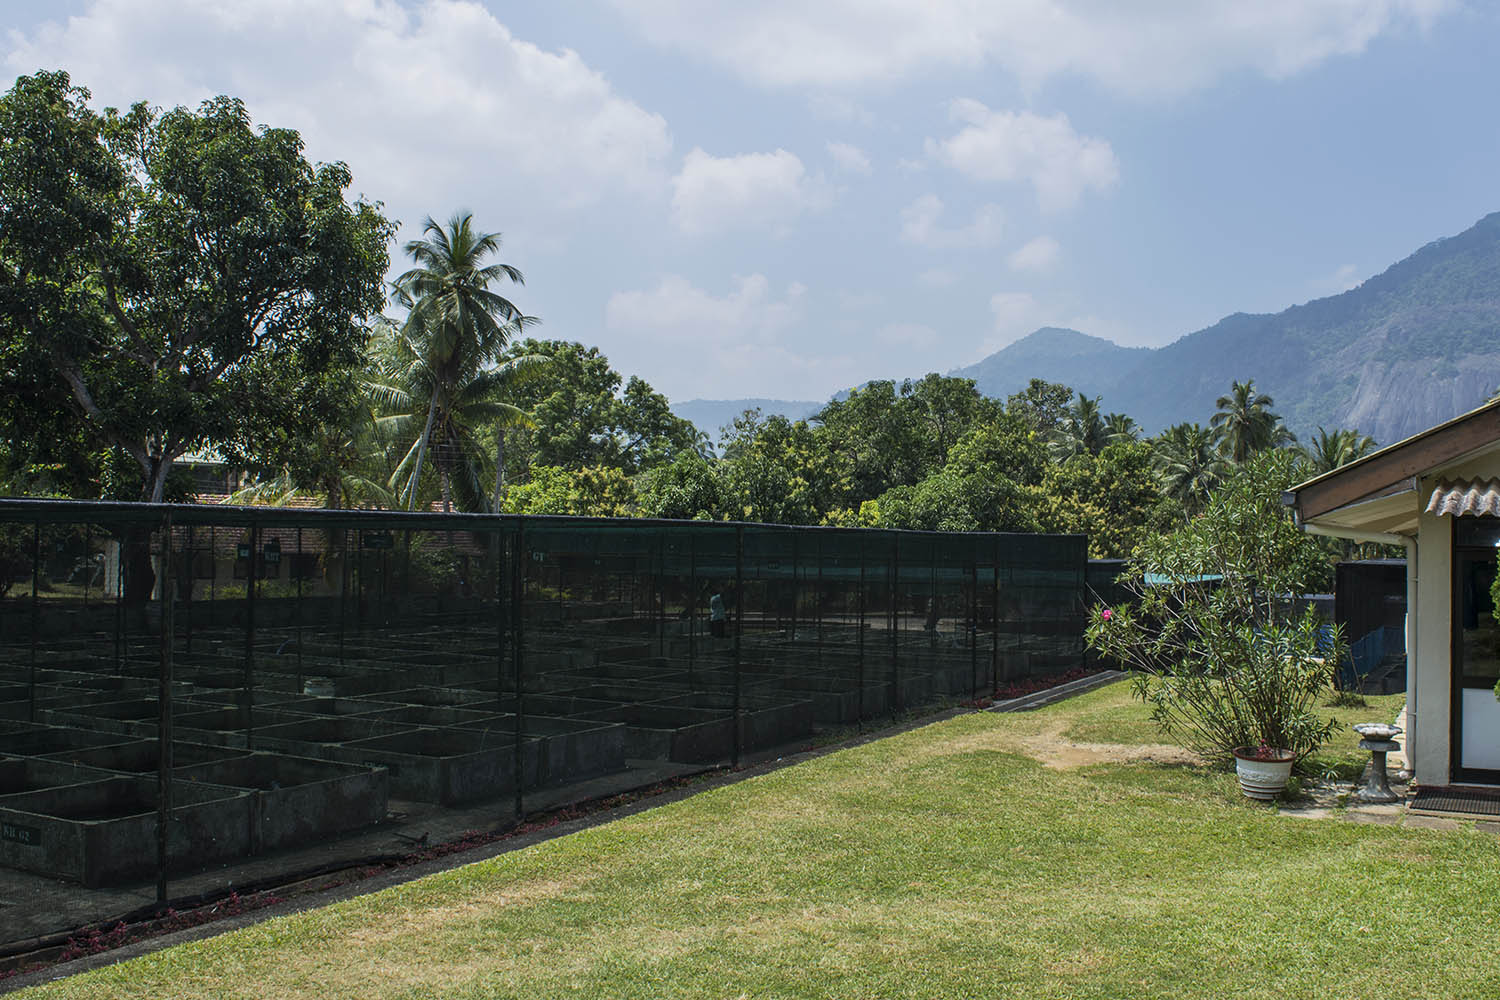 Situated in the tropical highlands of Sri Lanka's Hill Country, the ornamental fish breeding and training center at Rambadagalla is an expansive complex